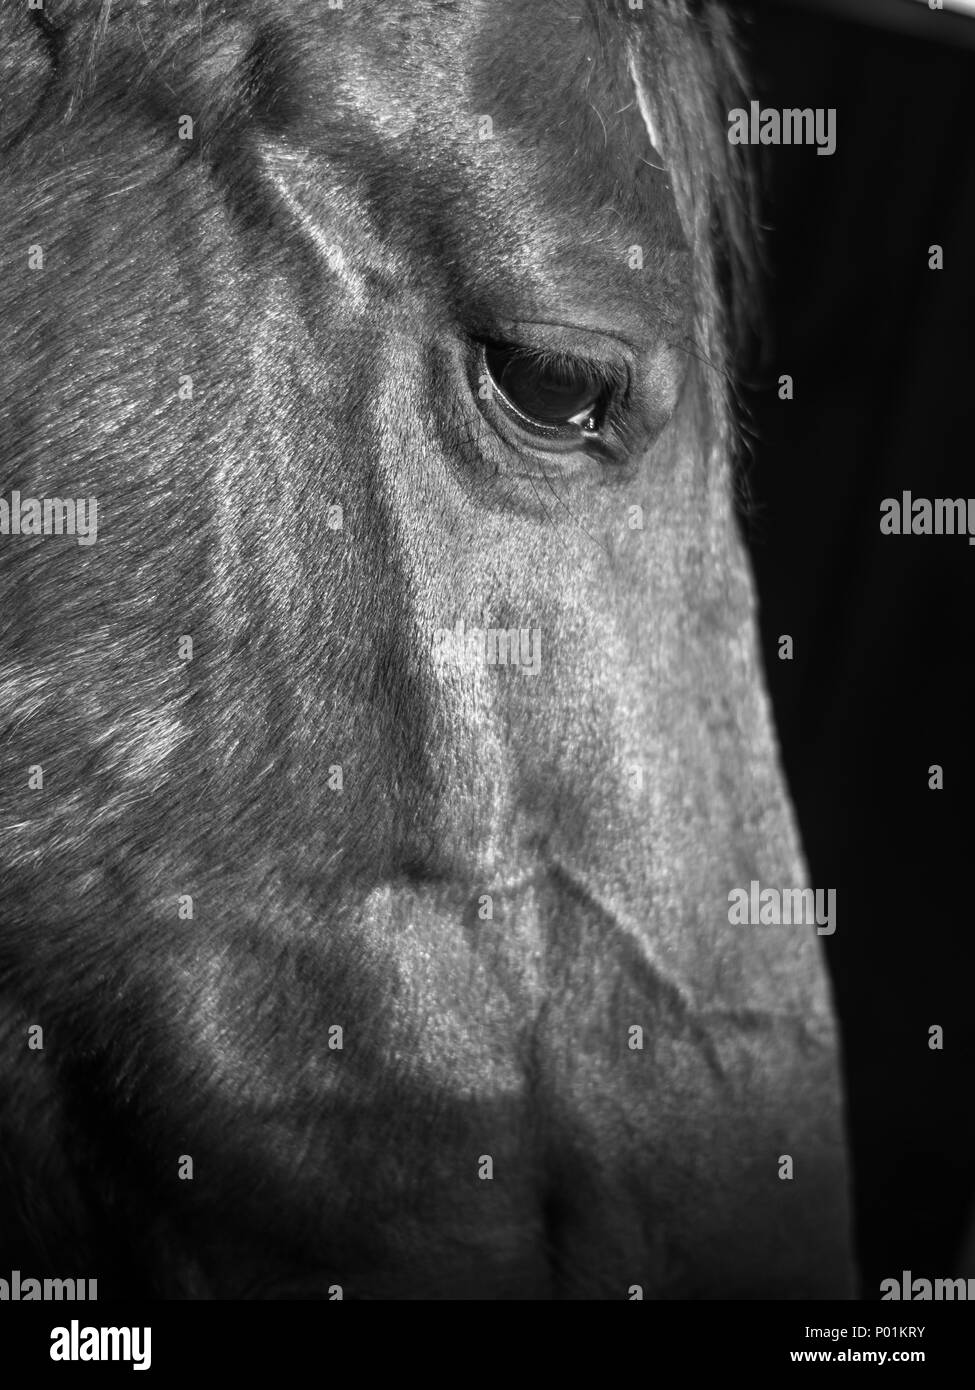 Horse Close Up- Israel Horse Close Up- Israel Stock Photo